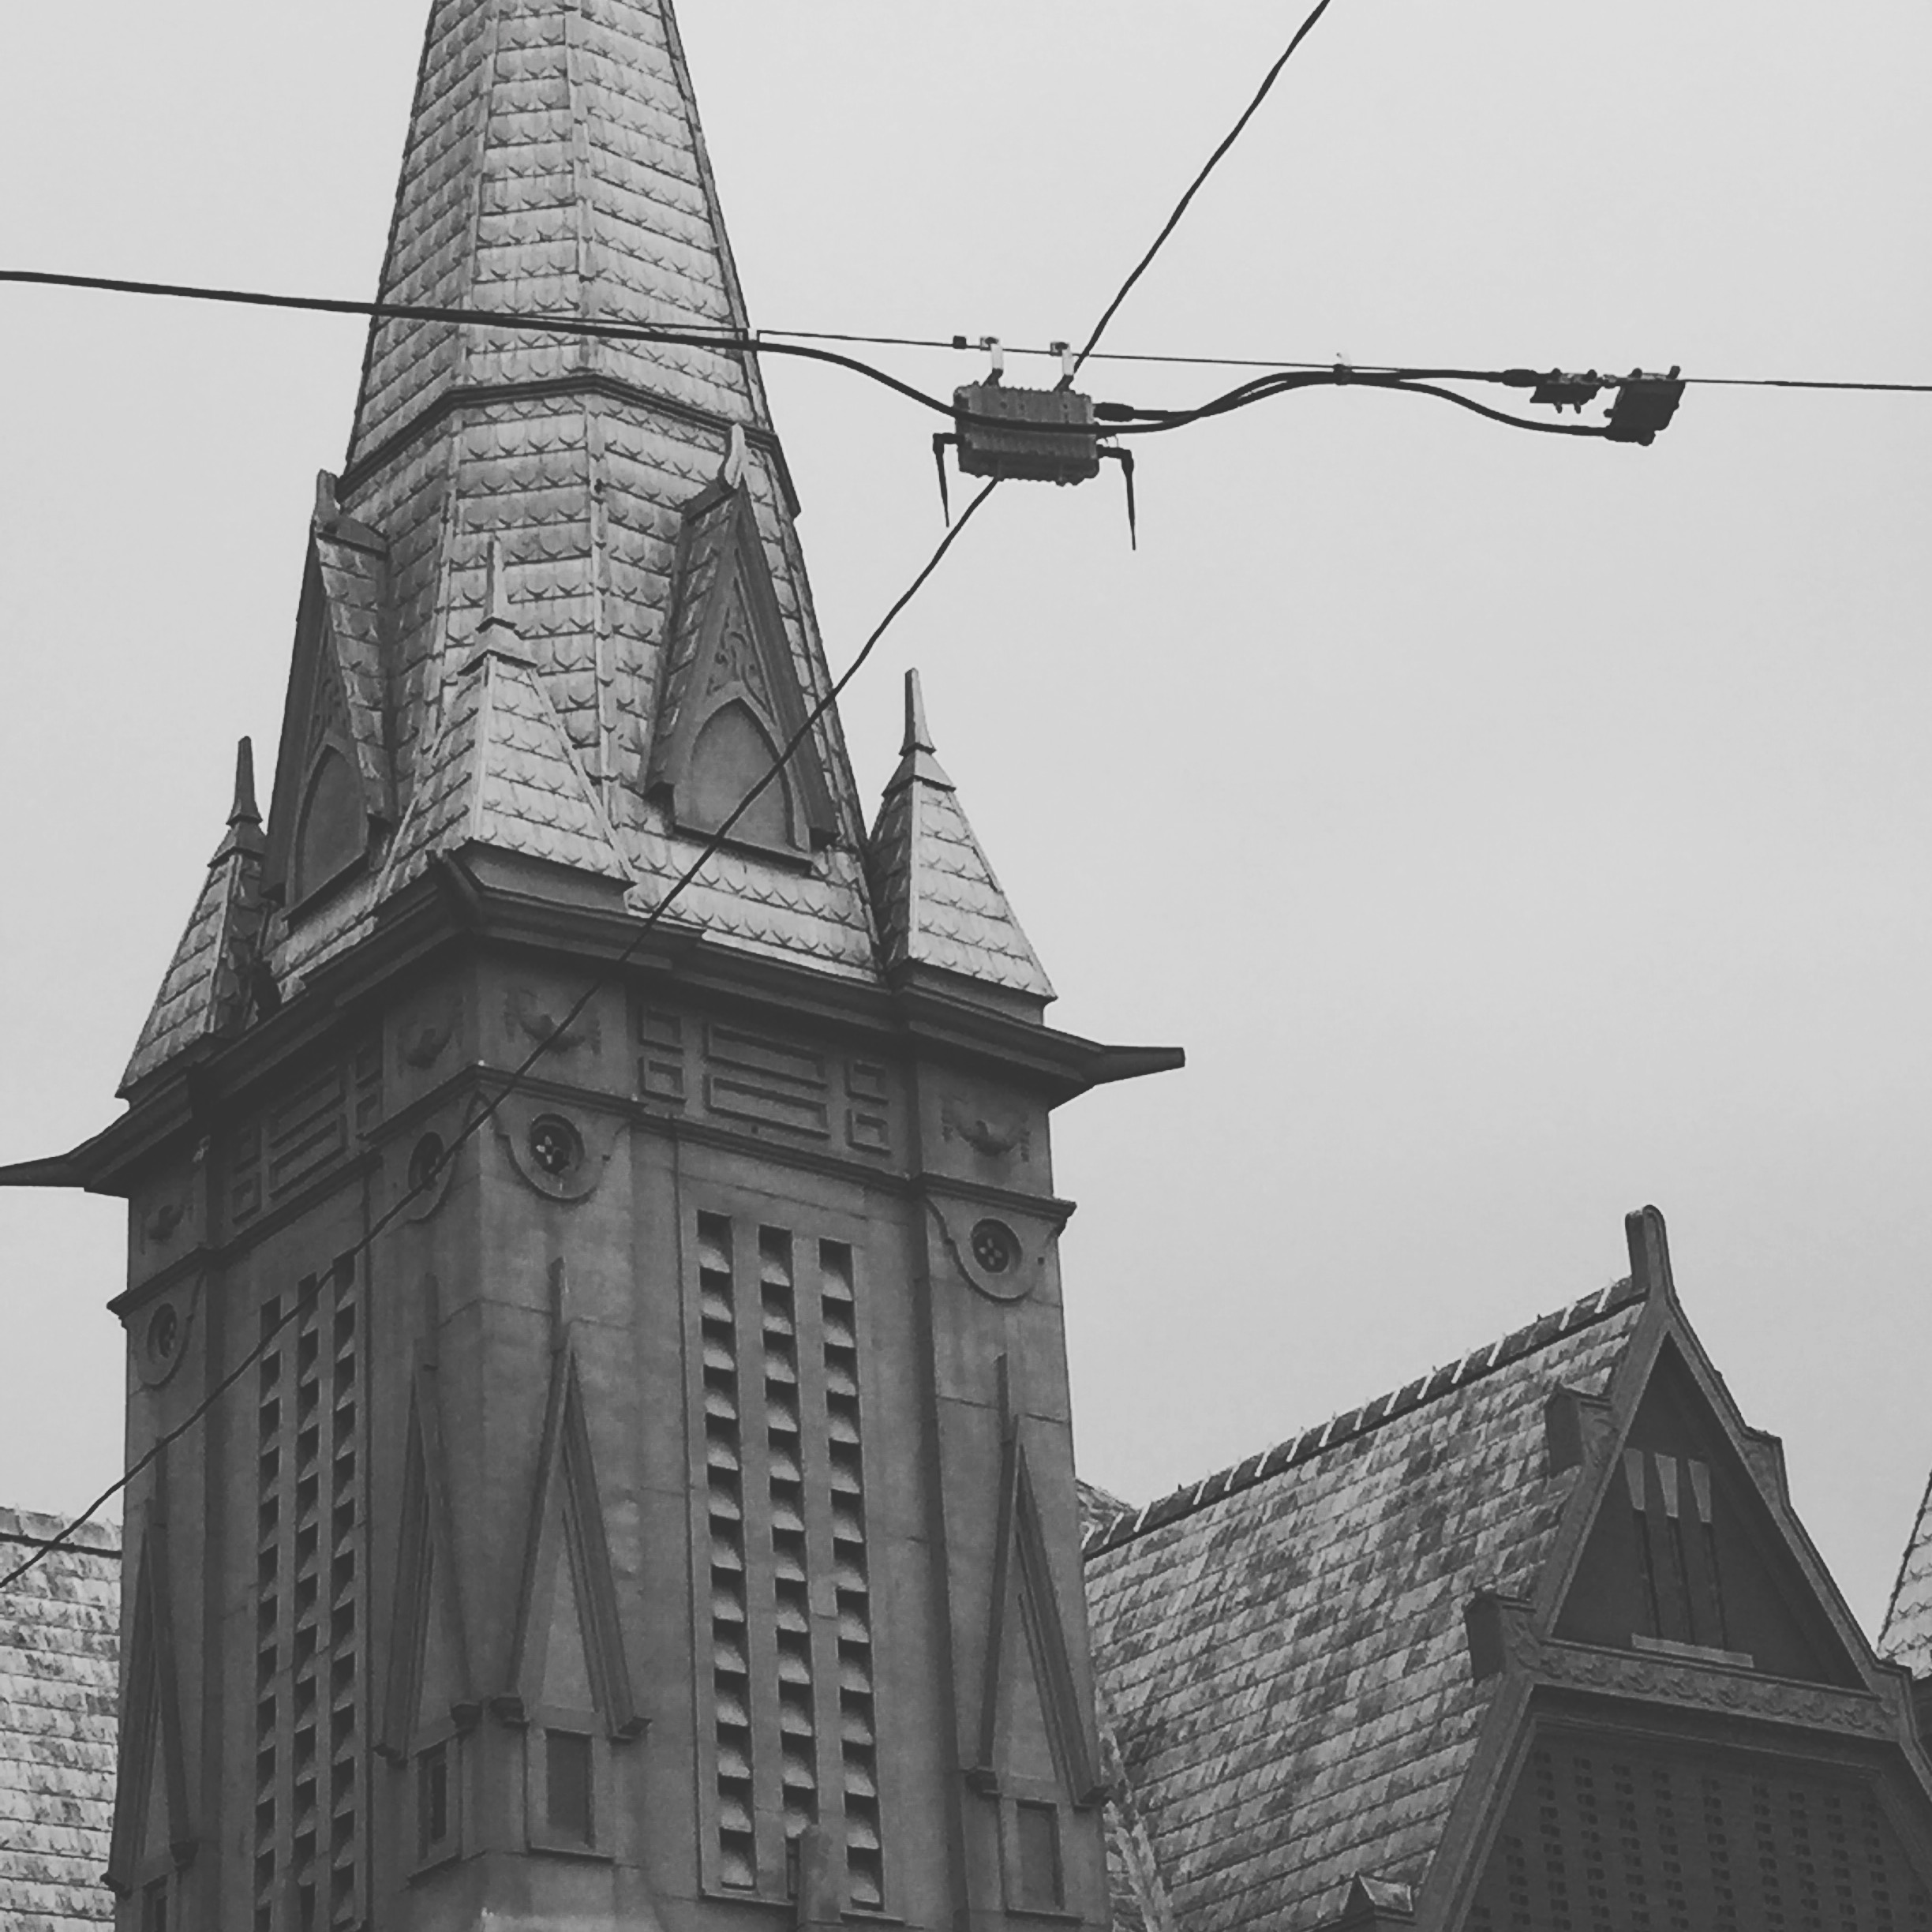 Church Spires, 2016. Photograph by Ginger Cochran